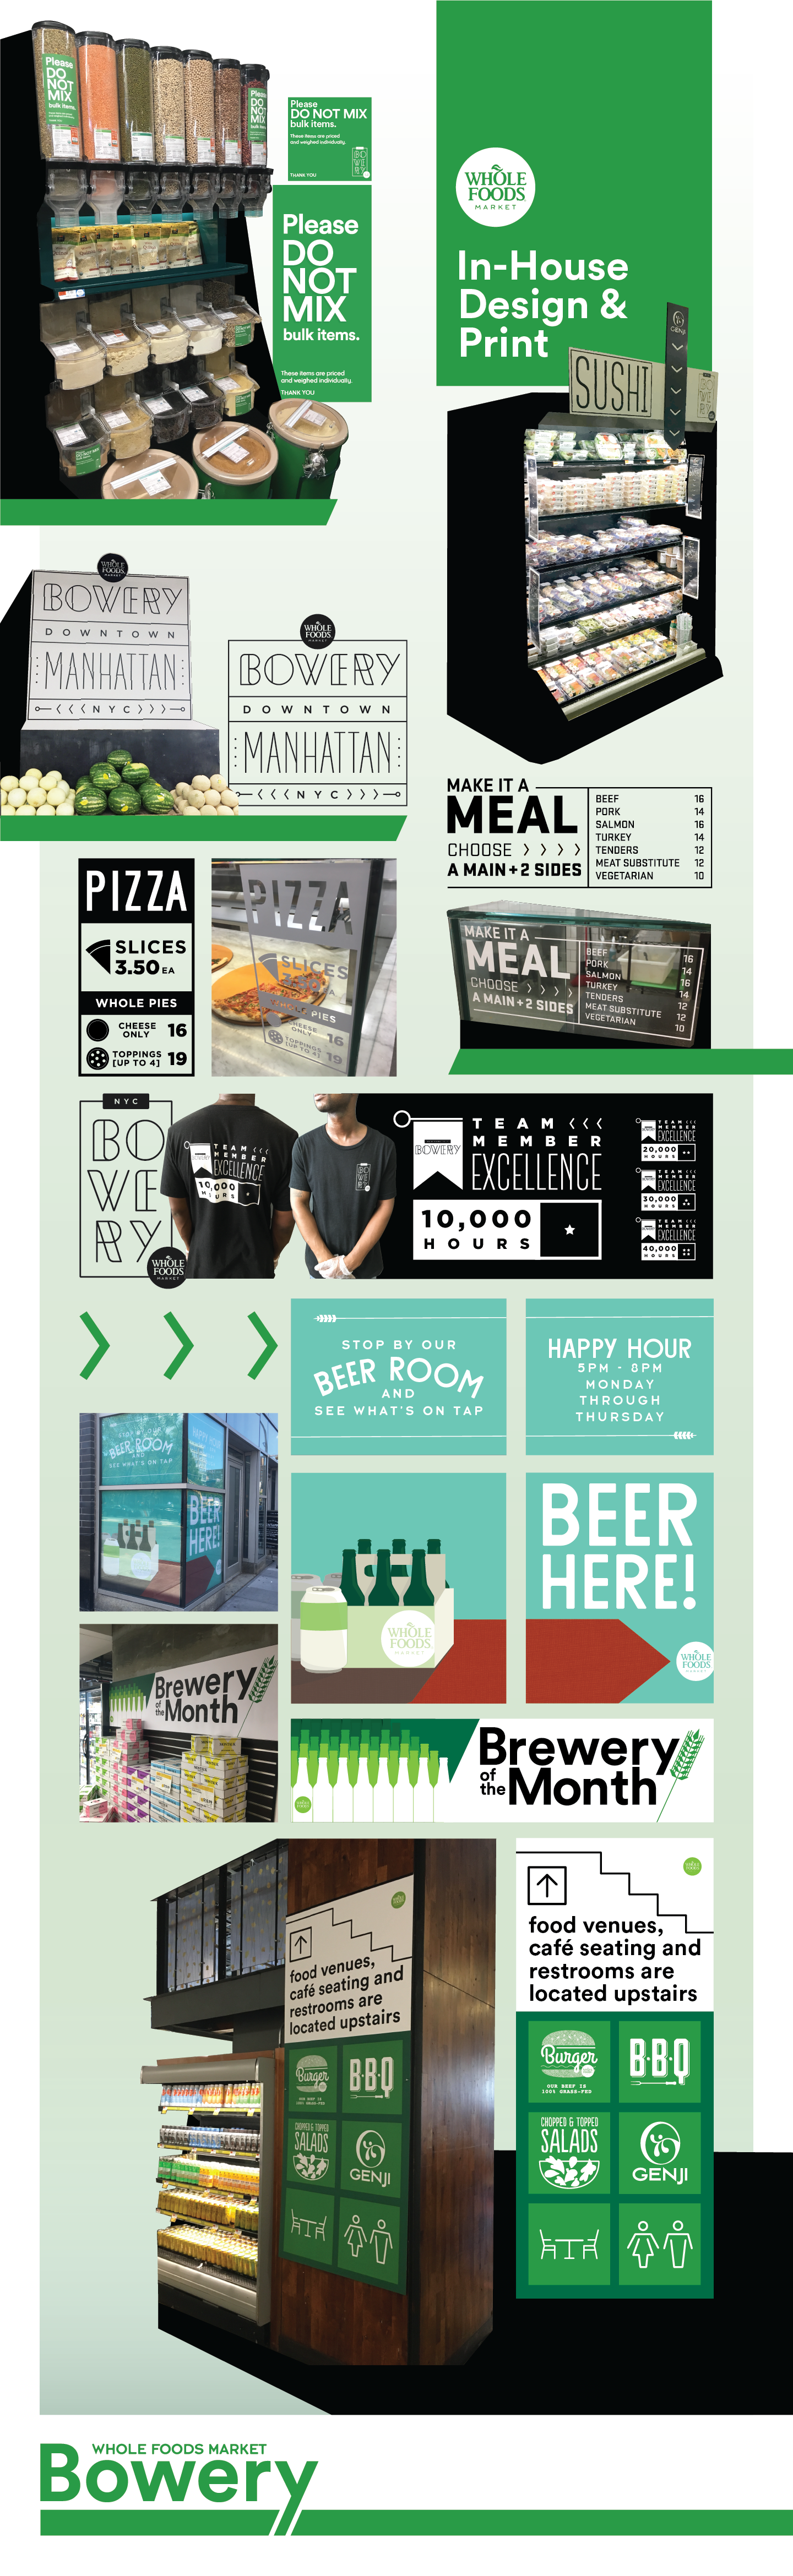 Bowery In-house design & print.png